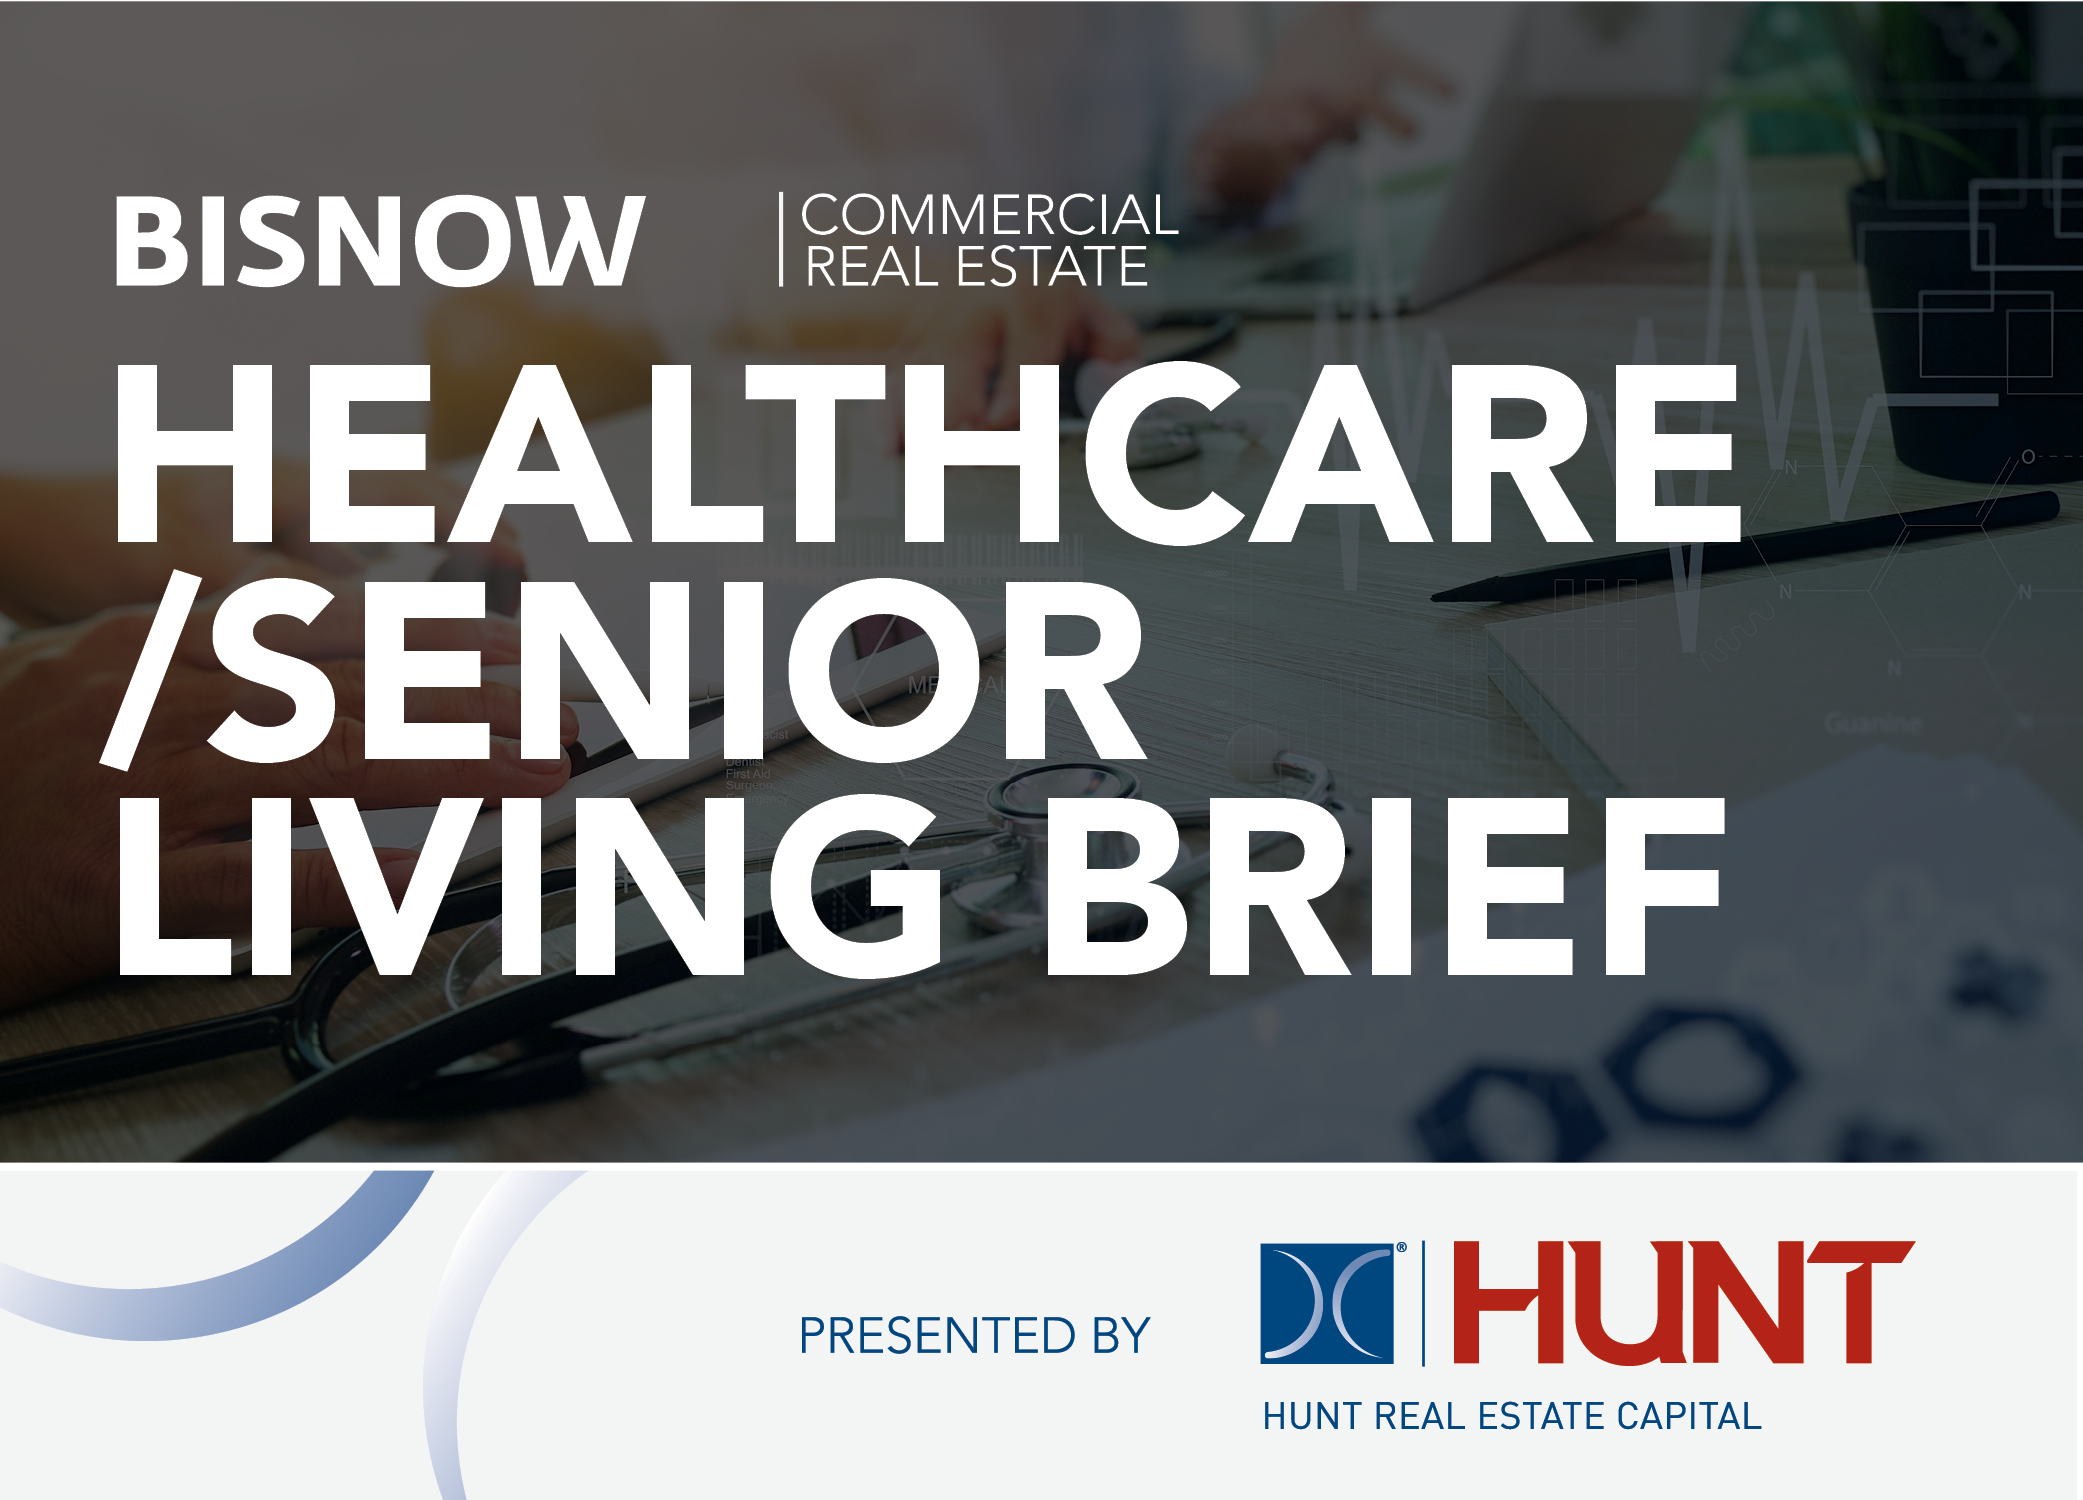 Bisnow Morning Brief Healthcare & Senior Living WEEKLY BRIEF [National]